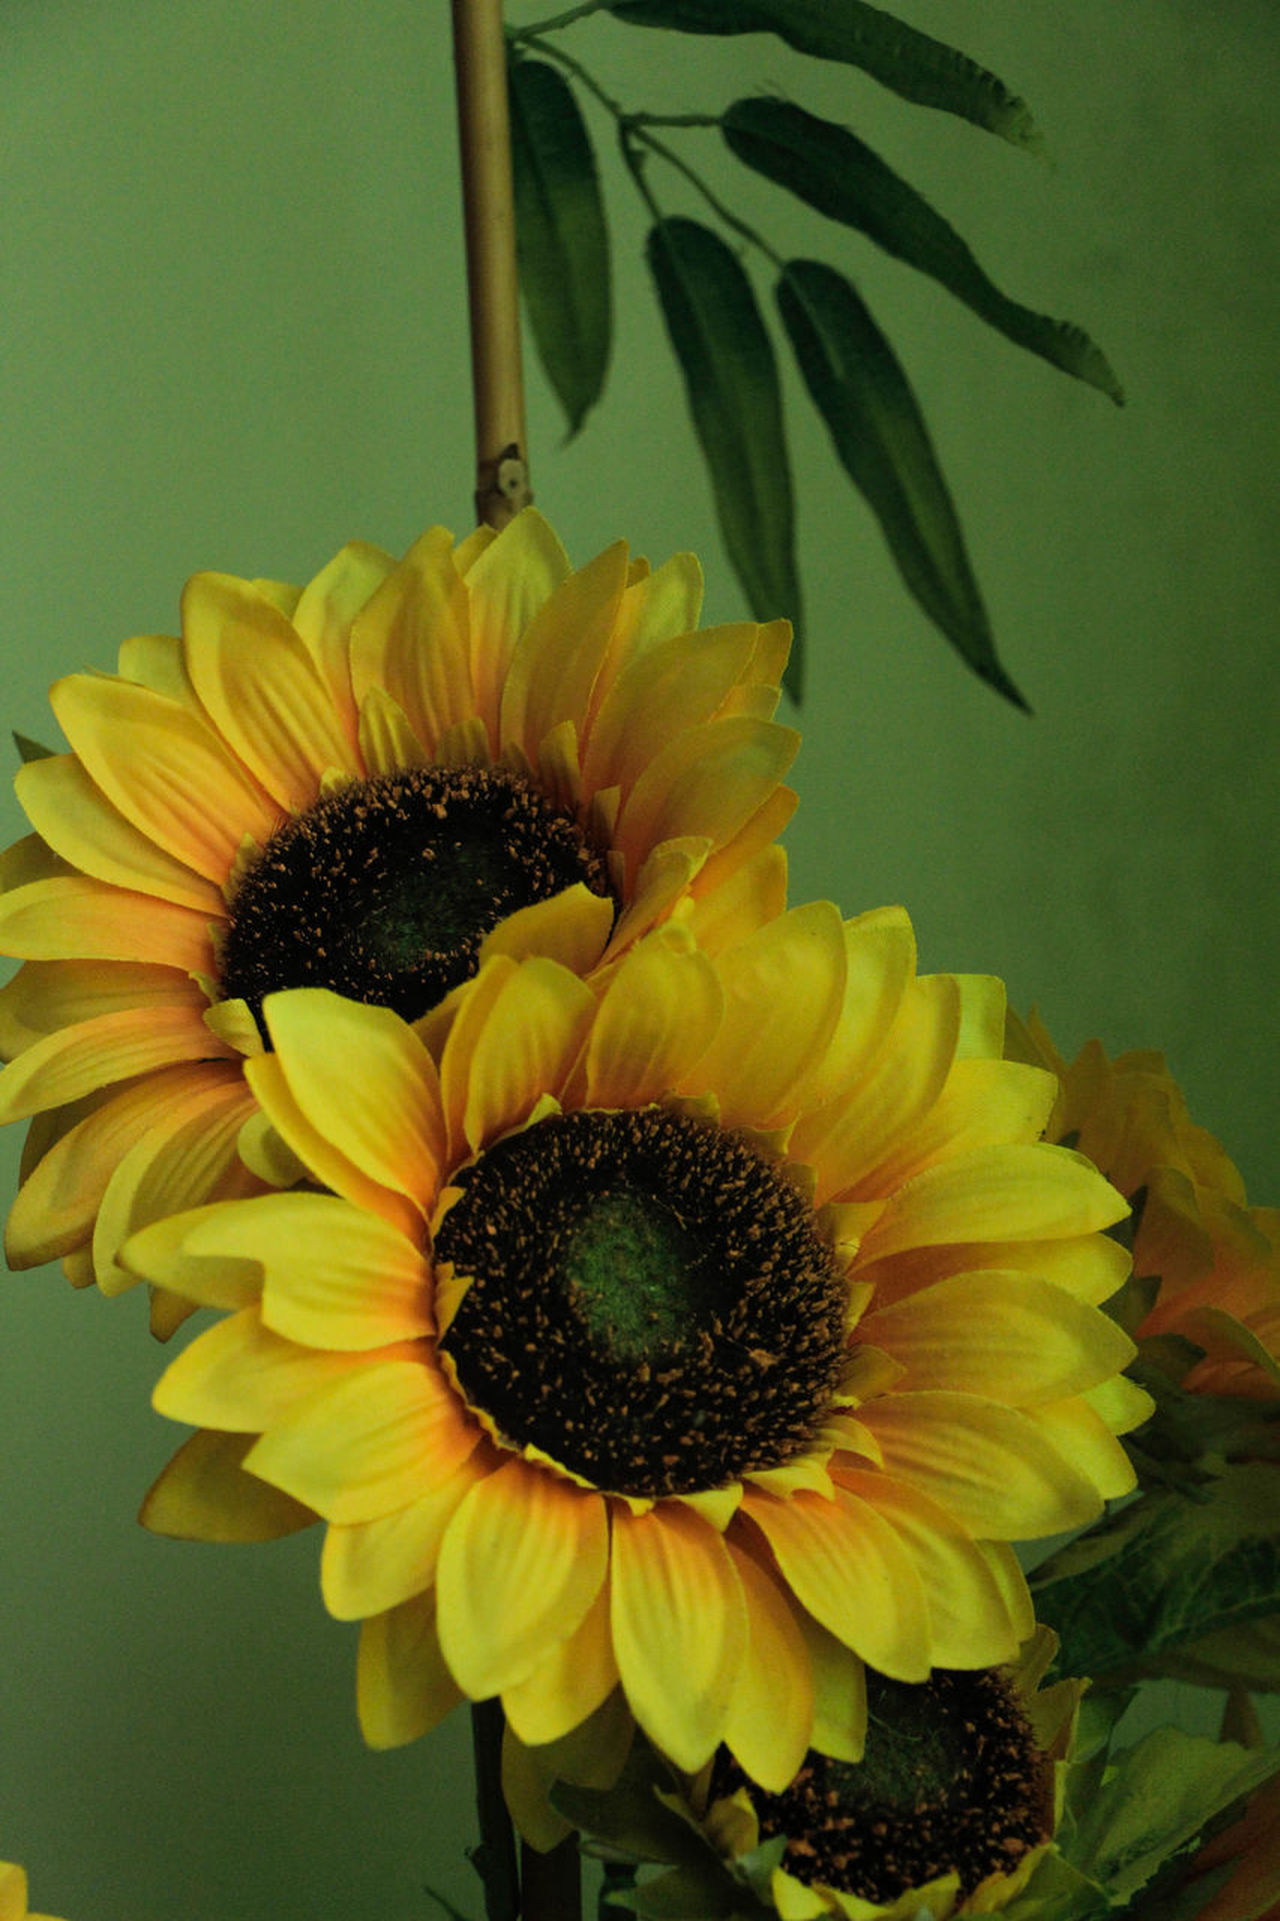 Artificial Artificial Flower Blooming Close-up Fake Flower Flower Head Growth Indoors  Petal Plant Sunflower Yellow